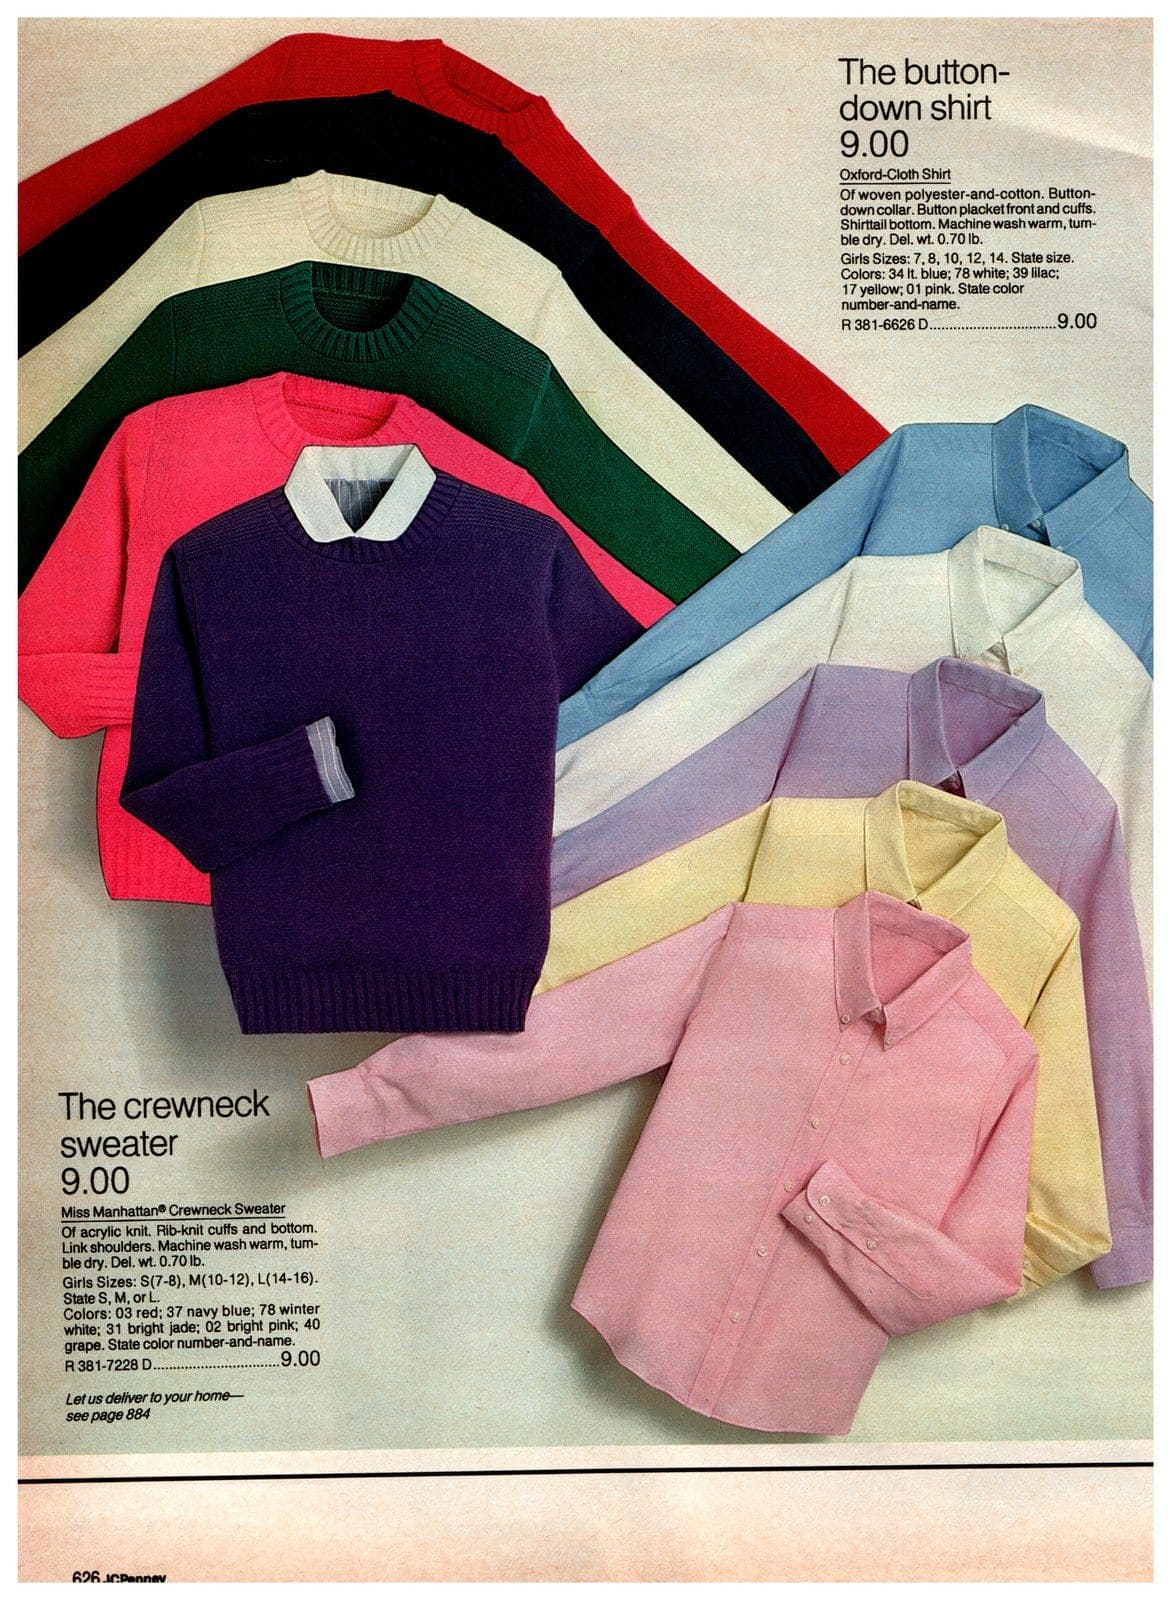 Button-down Oxford cloth shirts and crewneck acrylic knit sweaters